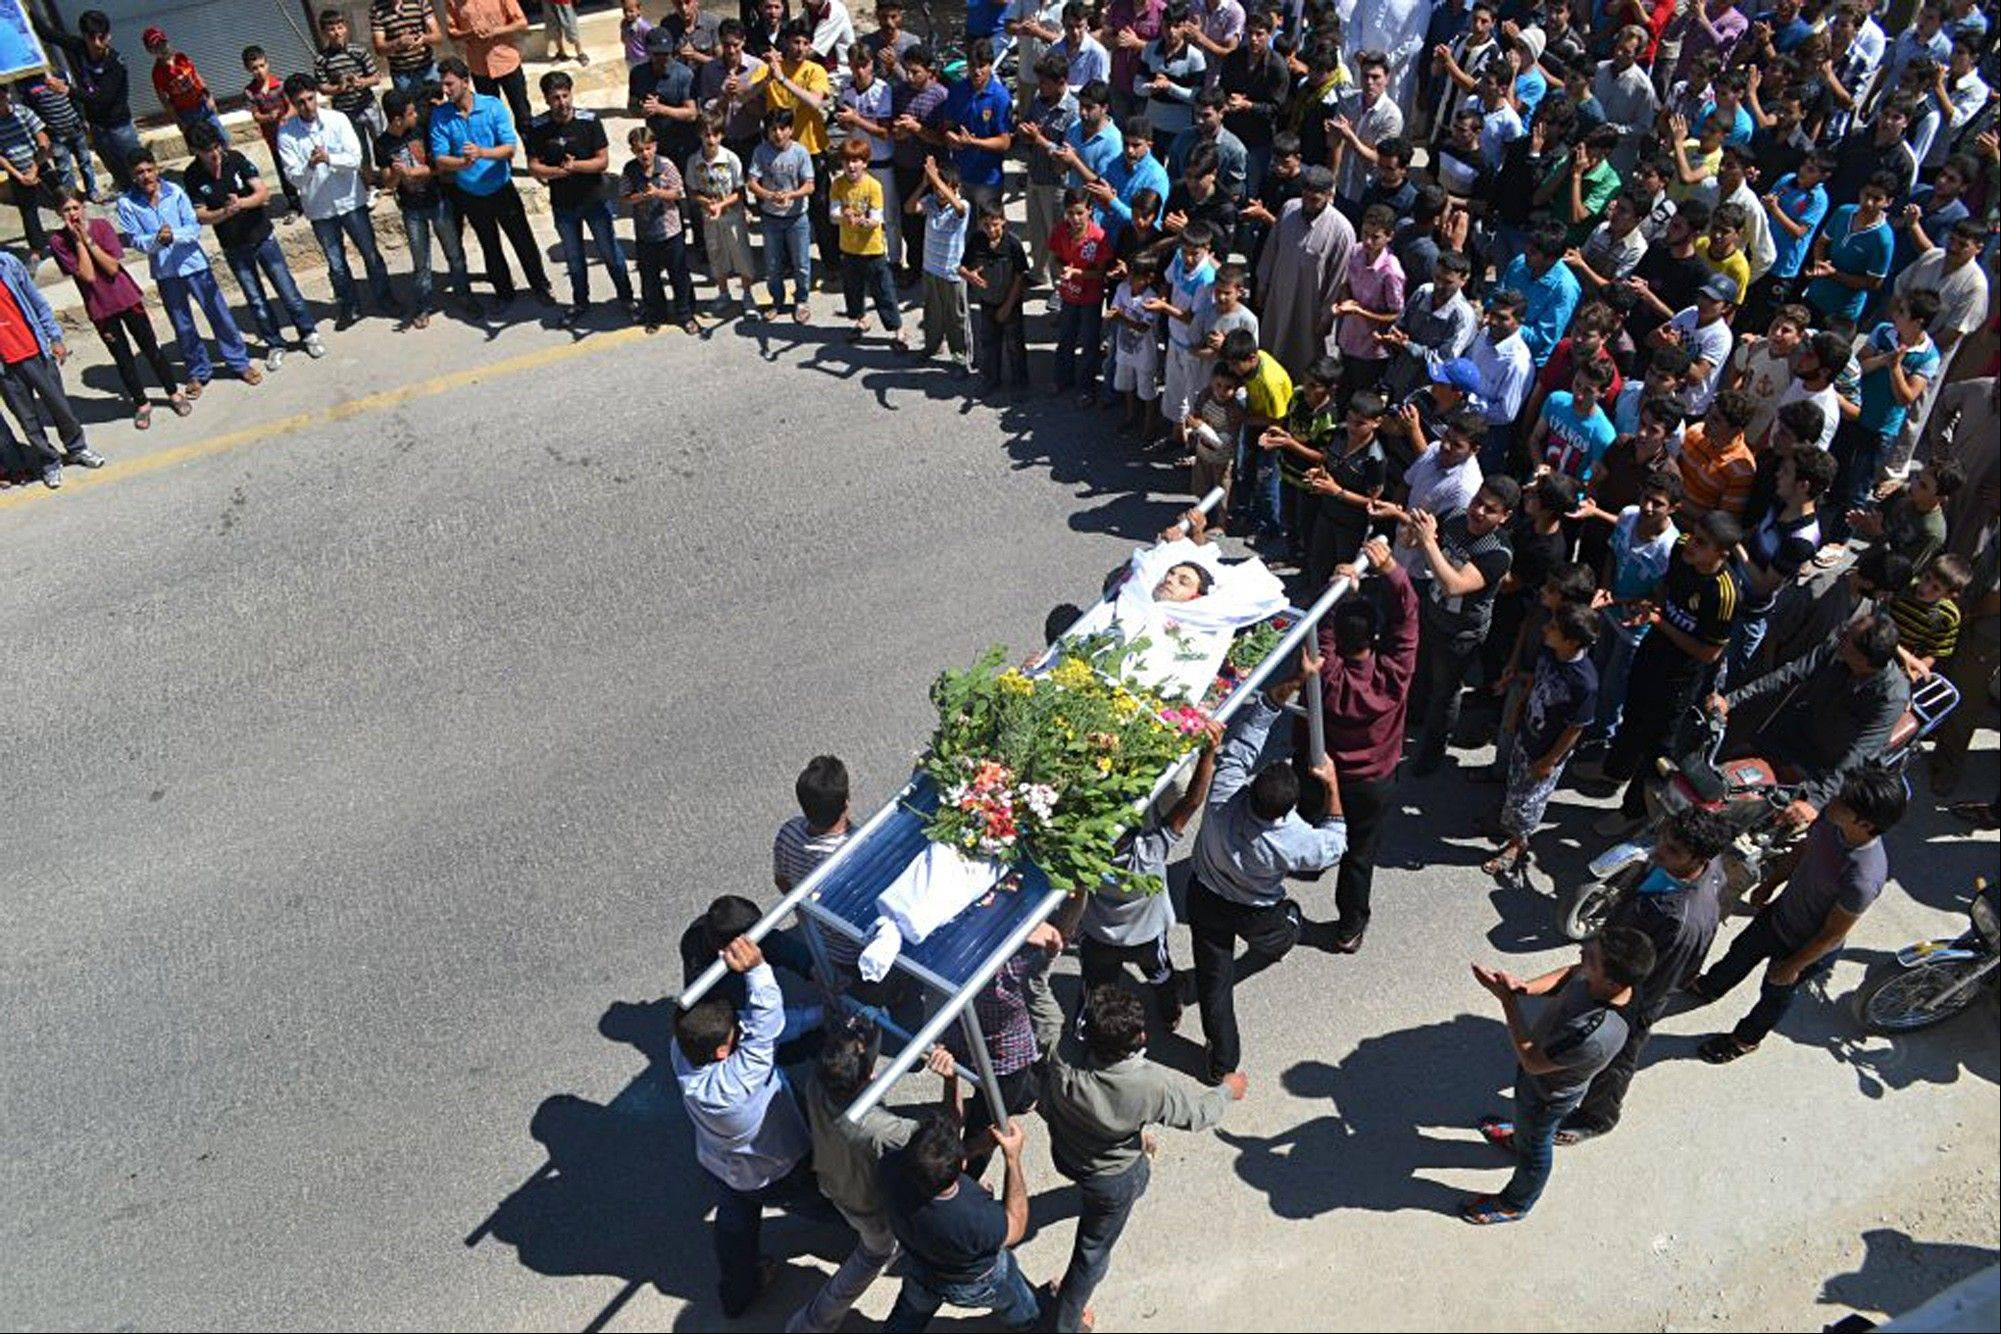 This citizen journalism image provided by Edlib News Network ENN, purports to show anti-Syrian regime mourners carrying the dead body of Thaer al-Khatib during his funeral procession, at the northern town of Kfar Nebel, Syria, Friday. Thaer al-Khatib was killed by Syrian security forces.